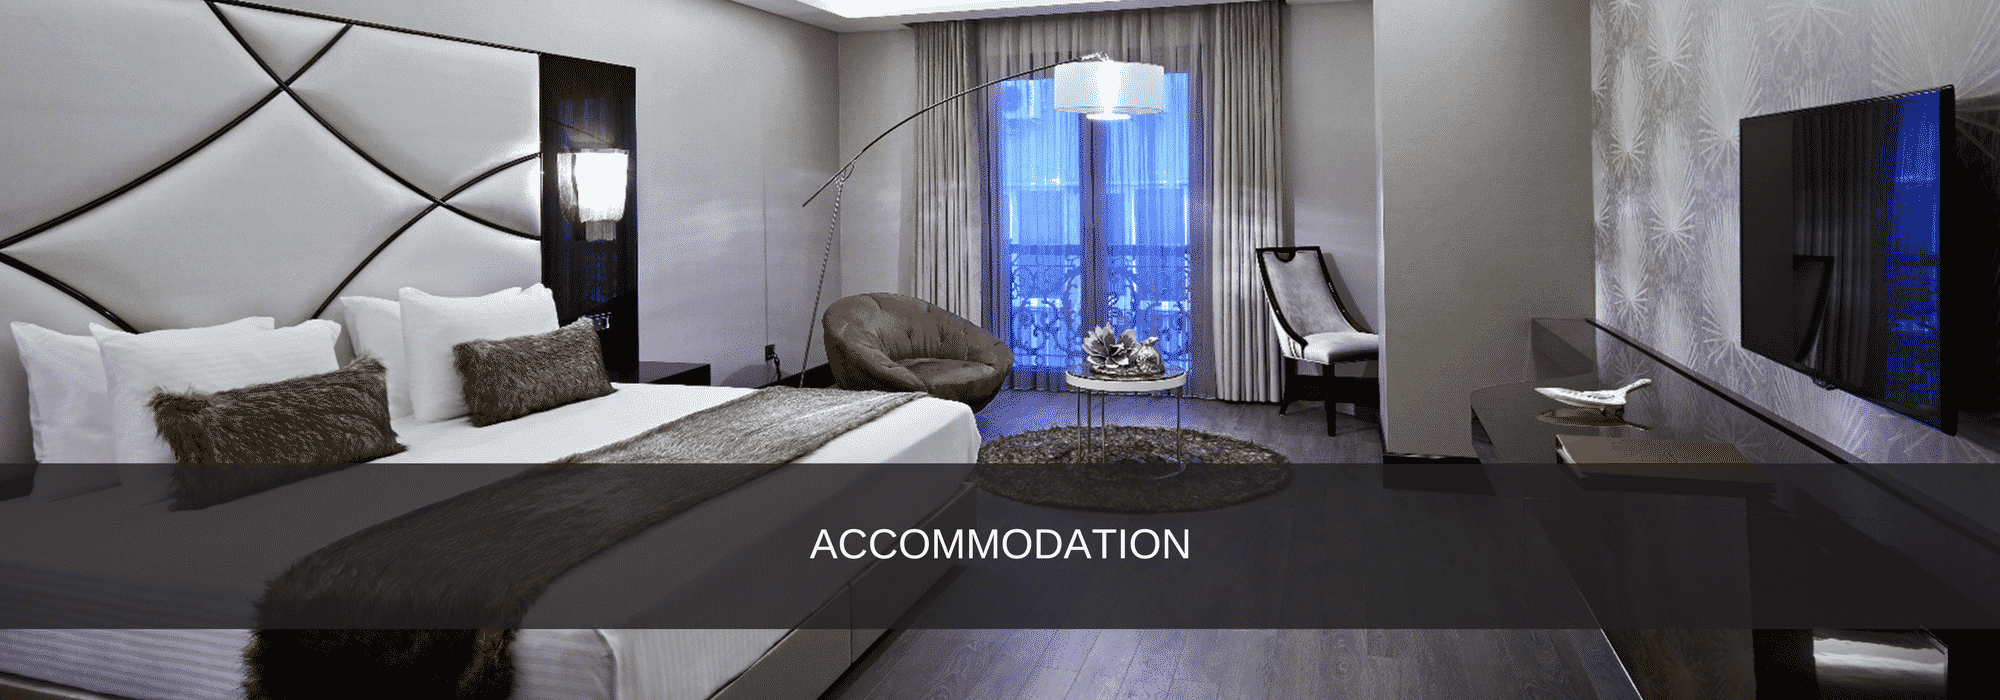 Accommodation FAQ - Global Medical Care